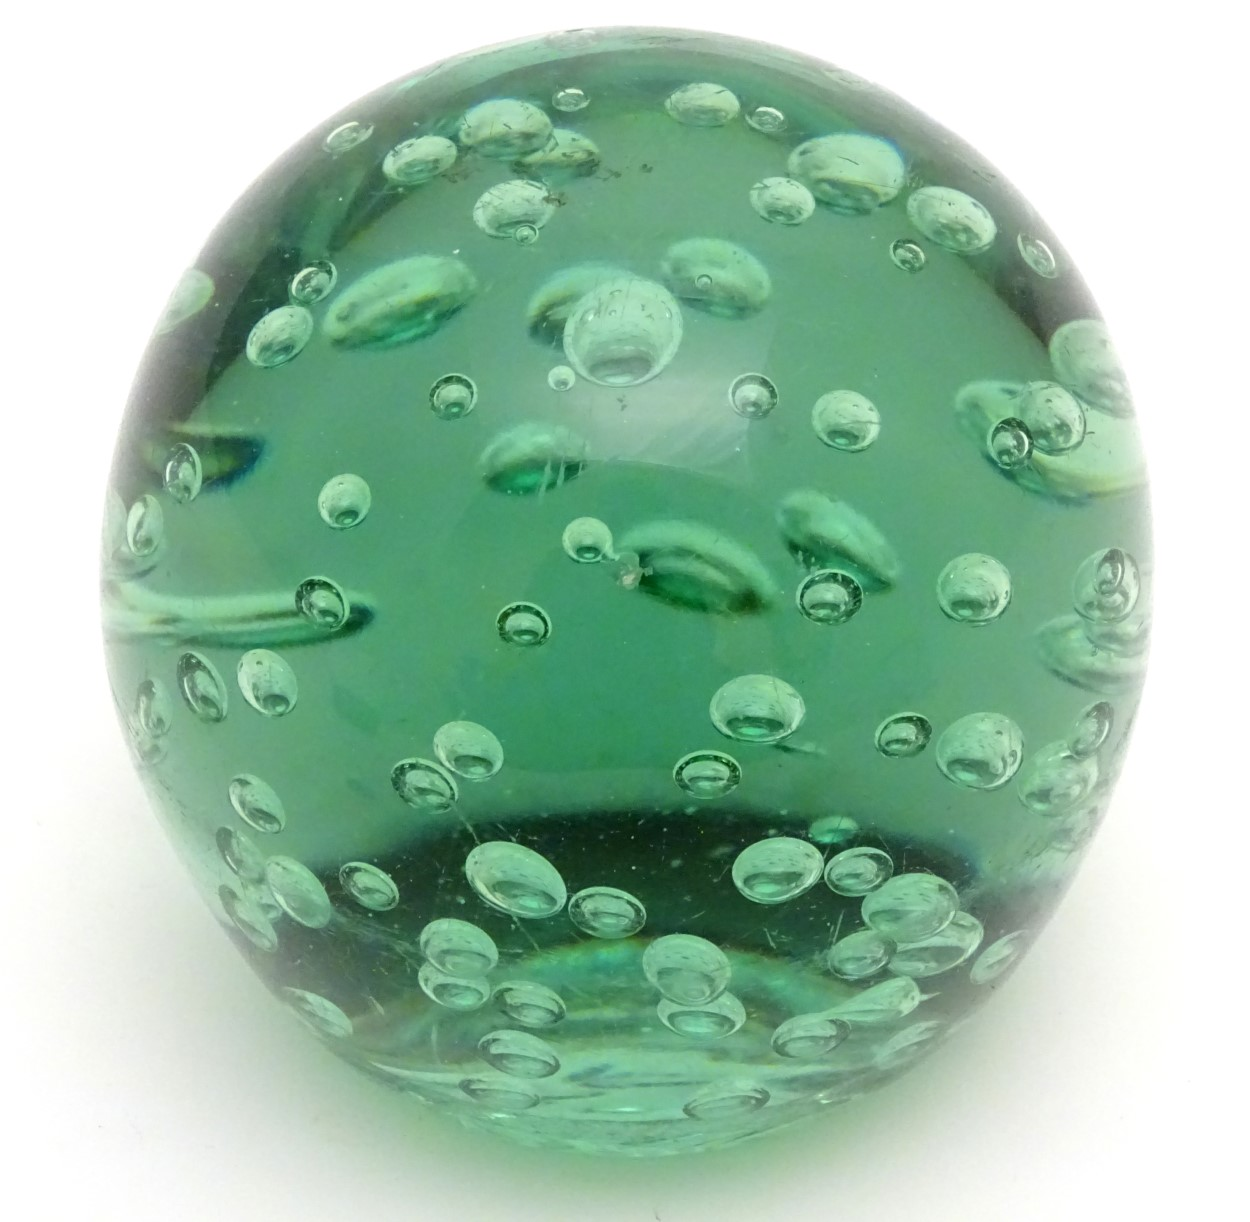 Lot 117 - Victorian Glass : An Aqua ' Dump ' weight ( often used as a door stop ) with air inclusions ,